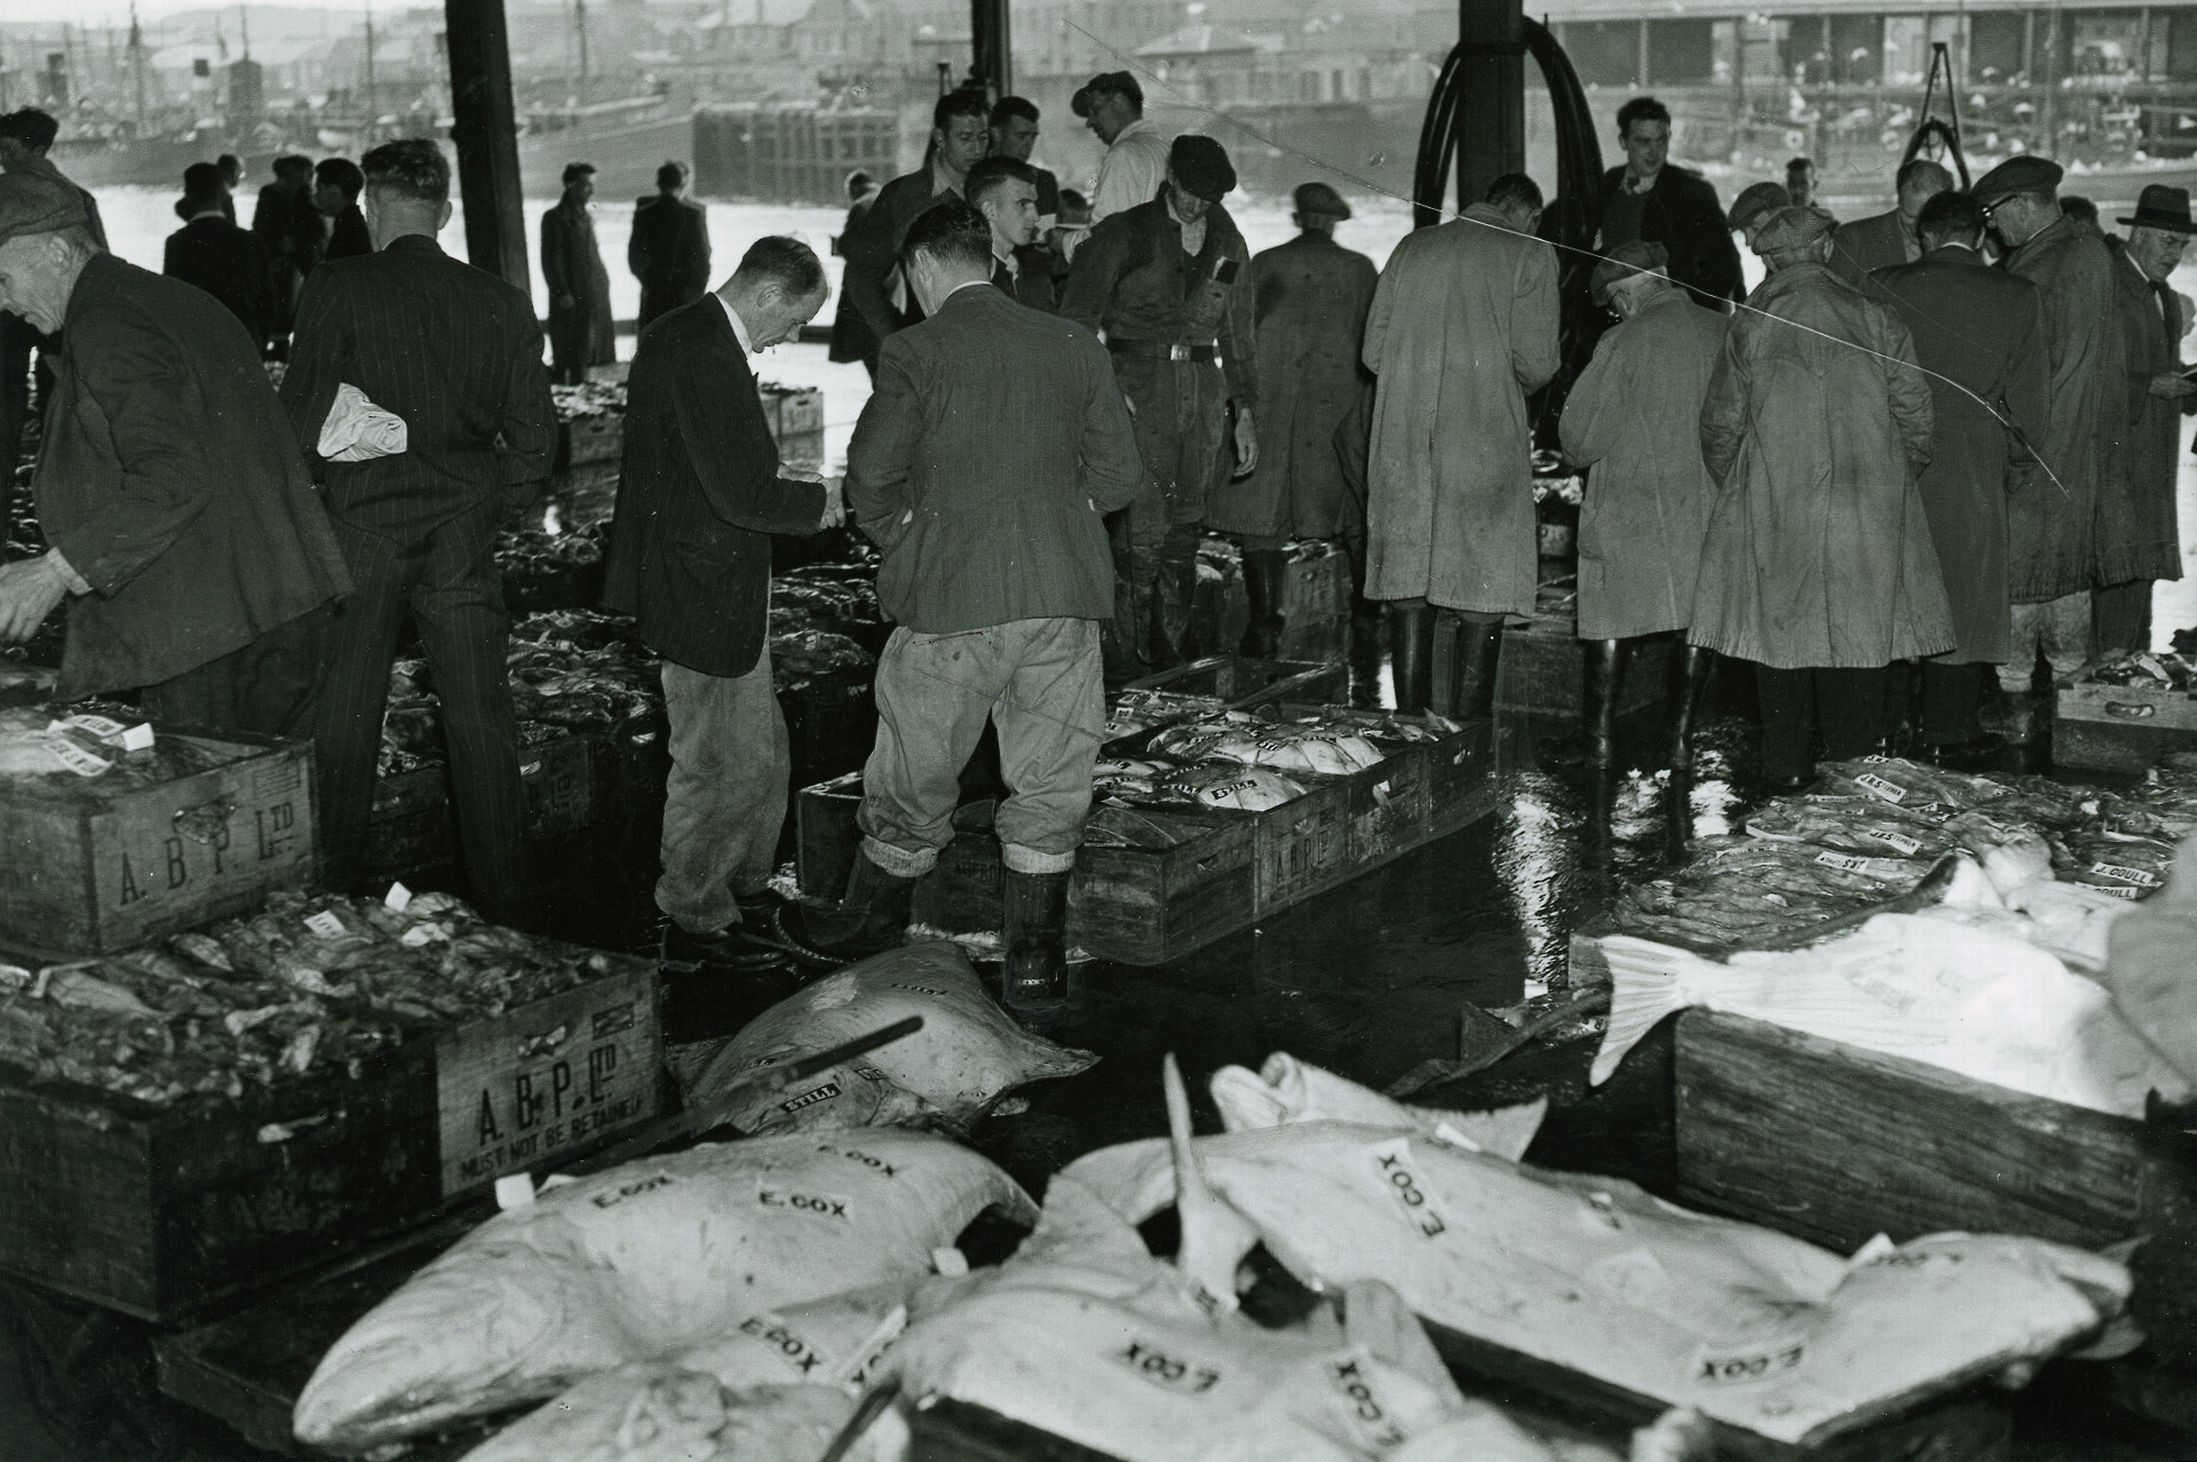 Dealers snap up boxes of fish at a market in July, 1955